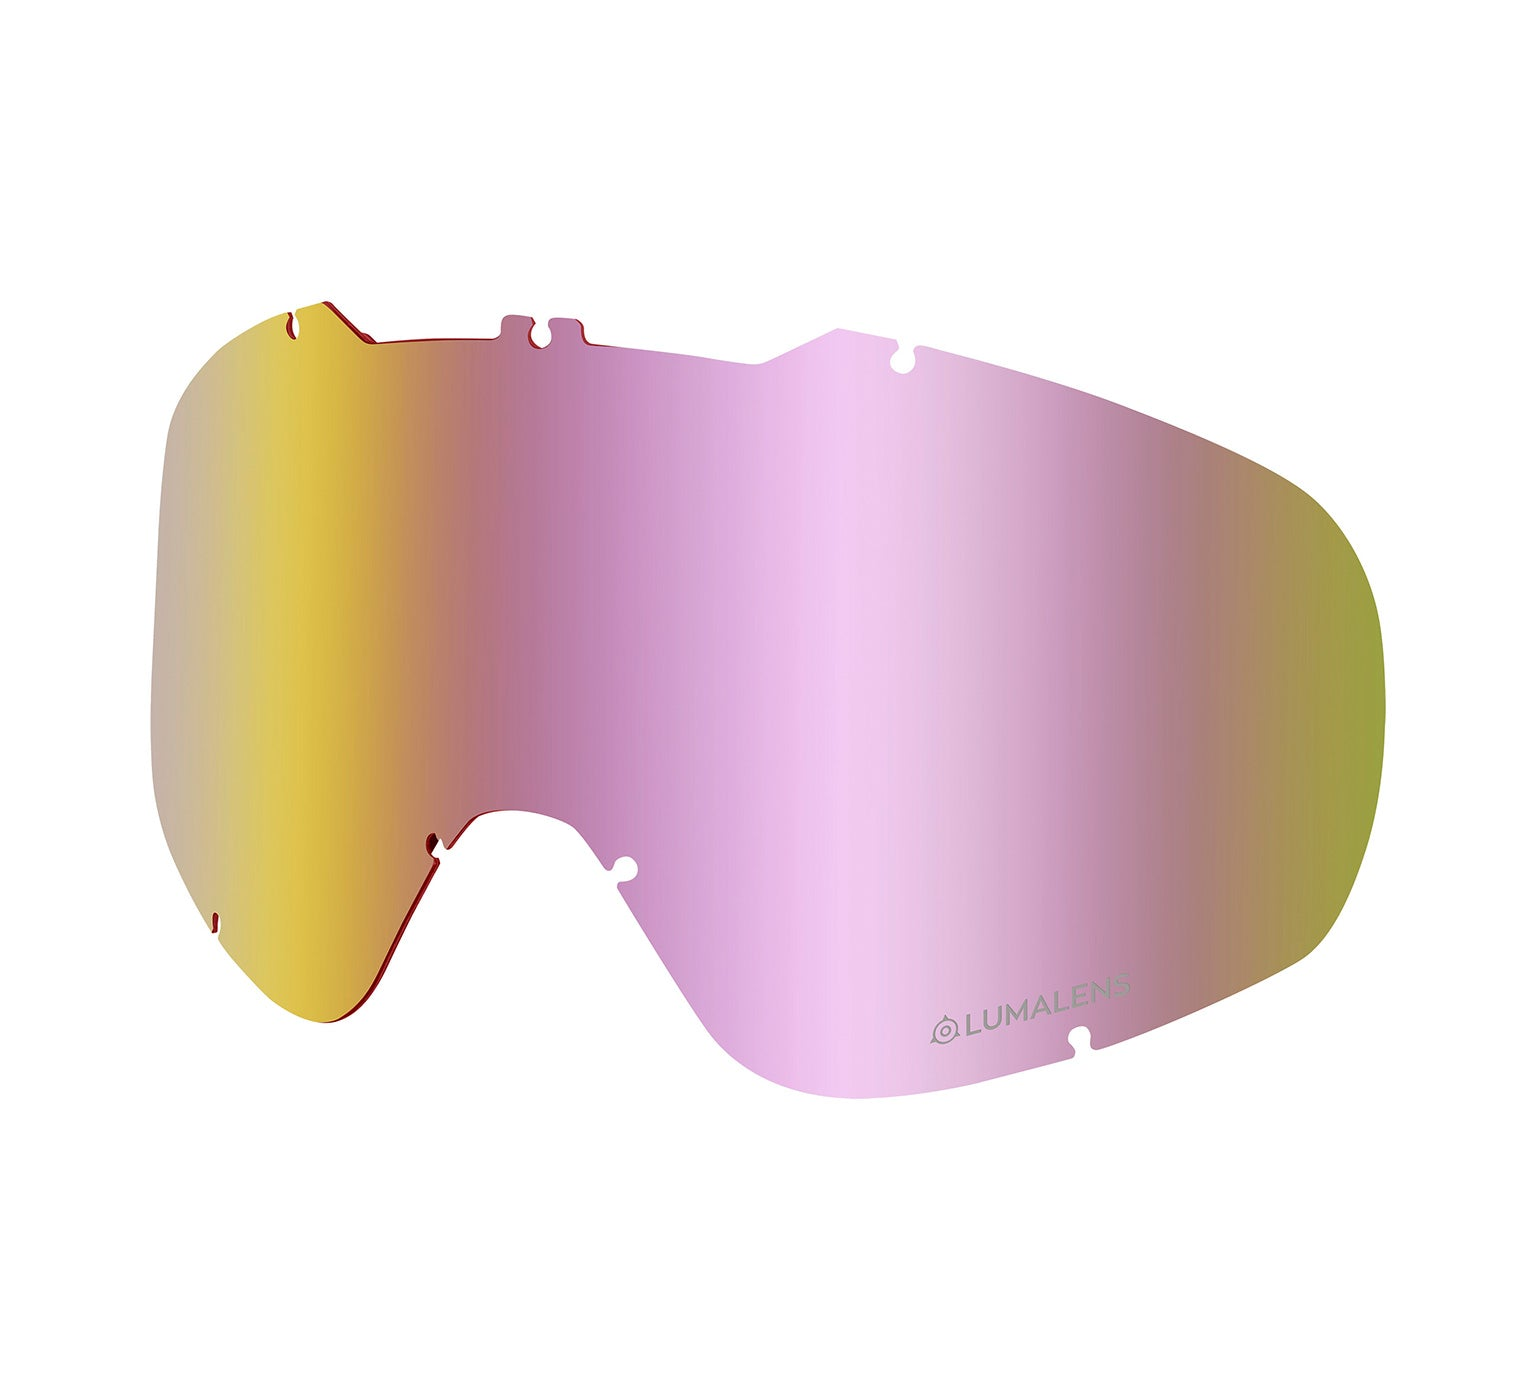 DX2 Replacement Lens ; Lumalens Pink Ionized